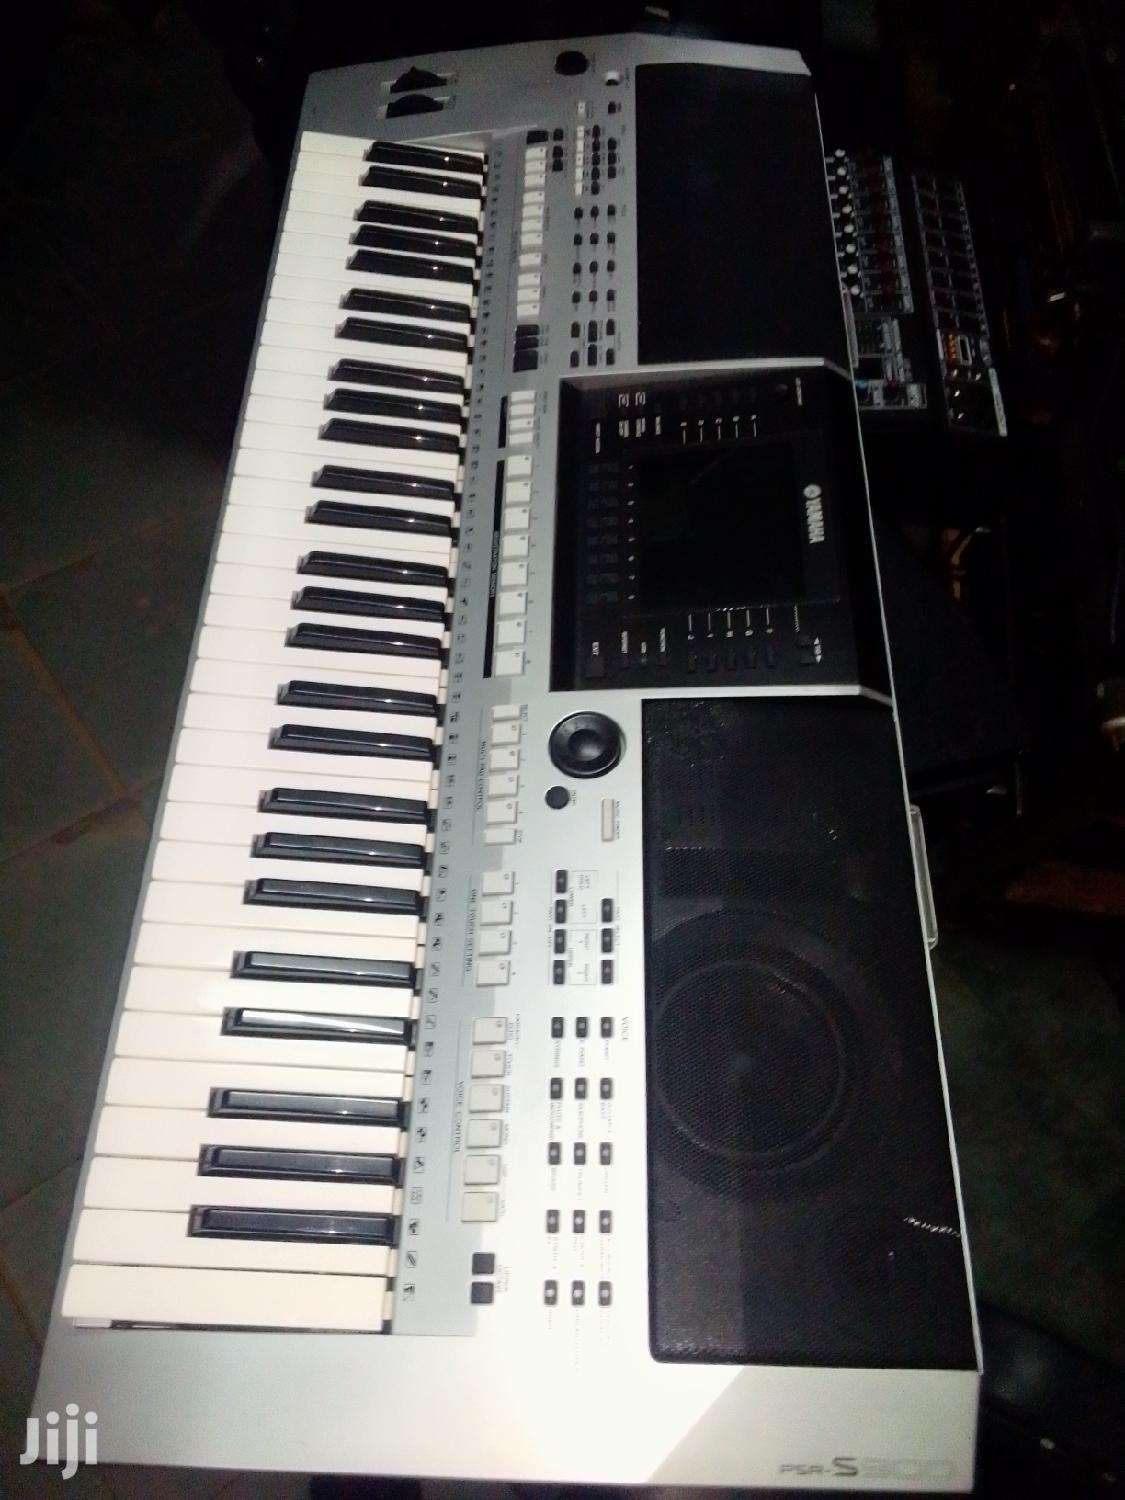 Keyboard Psr S9000 | Musical Instruments & Gear for sale in Kampala, Central Region, Uganda